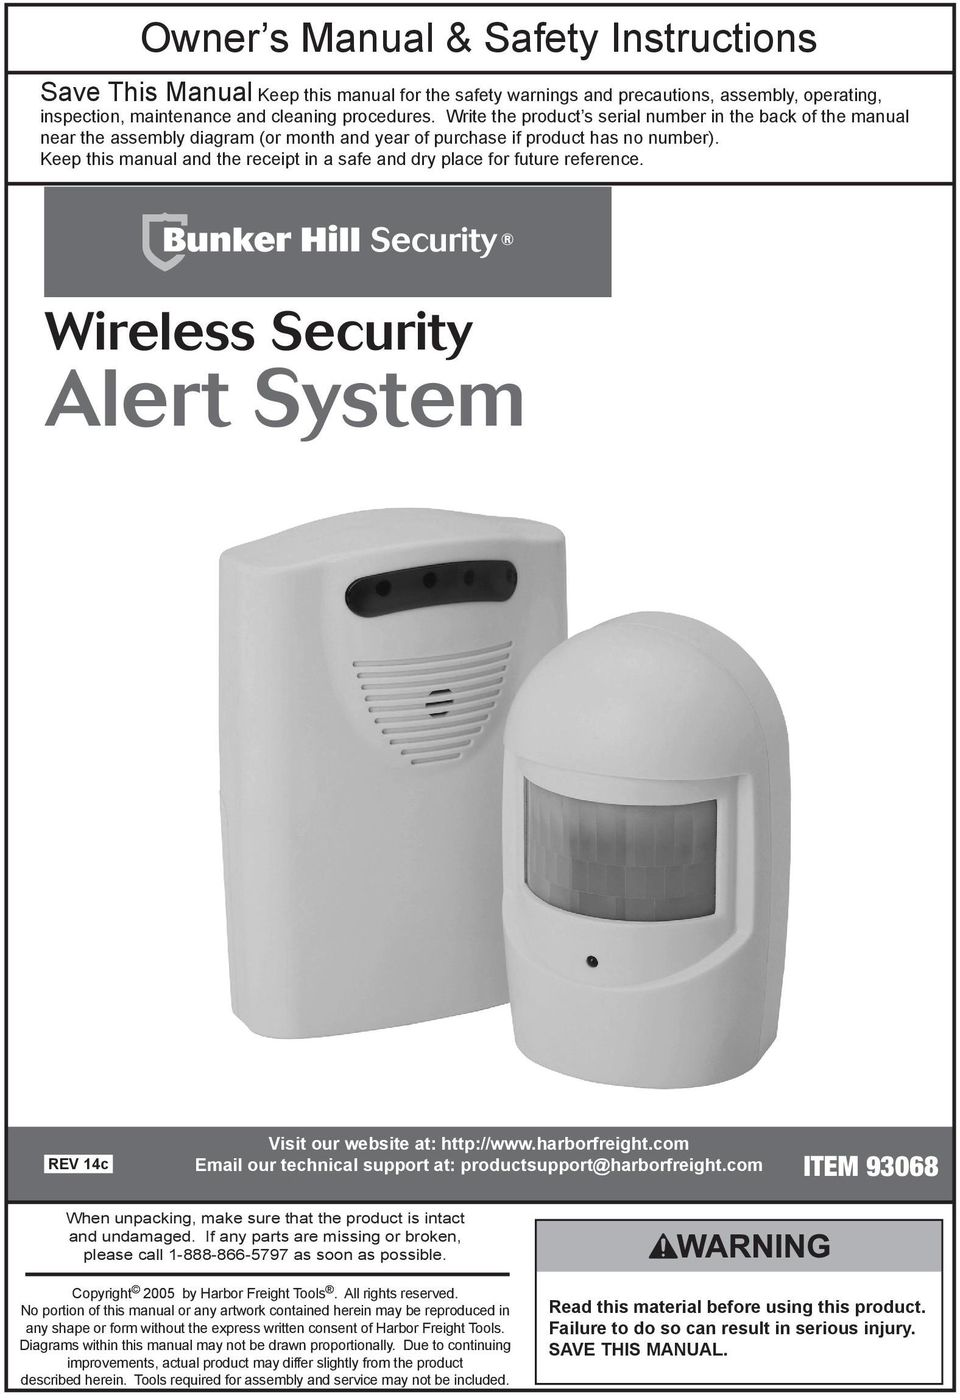 Keep this manual and the receipt in a safe and dry place for future reference. Wireless Security Alert System REV 14c Visit our website at: http://www.harborfreight.